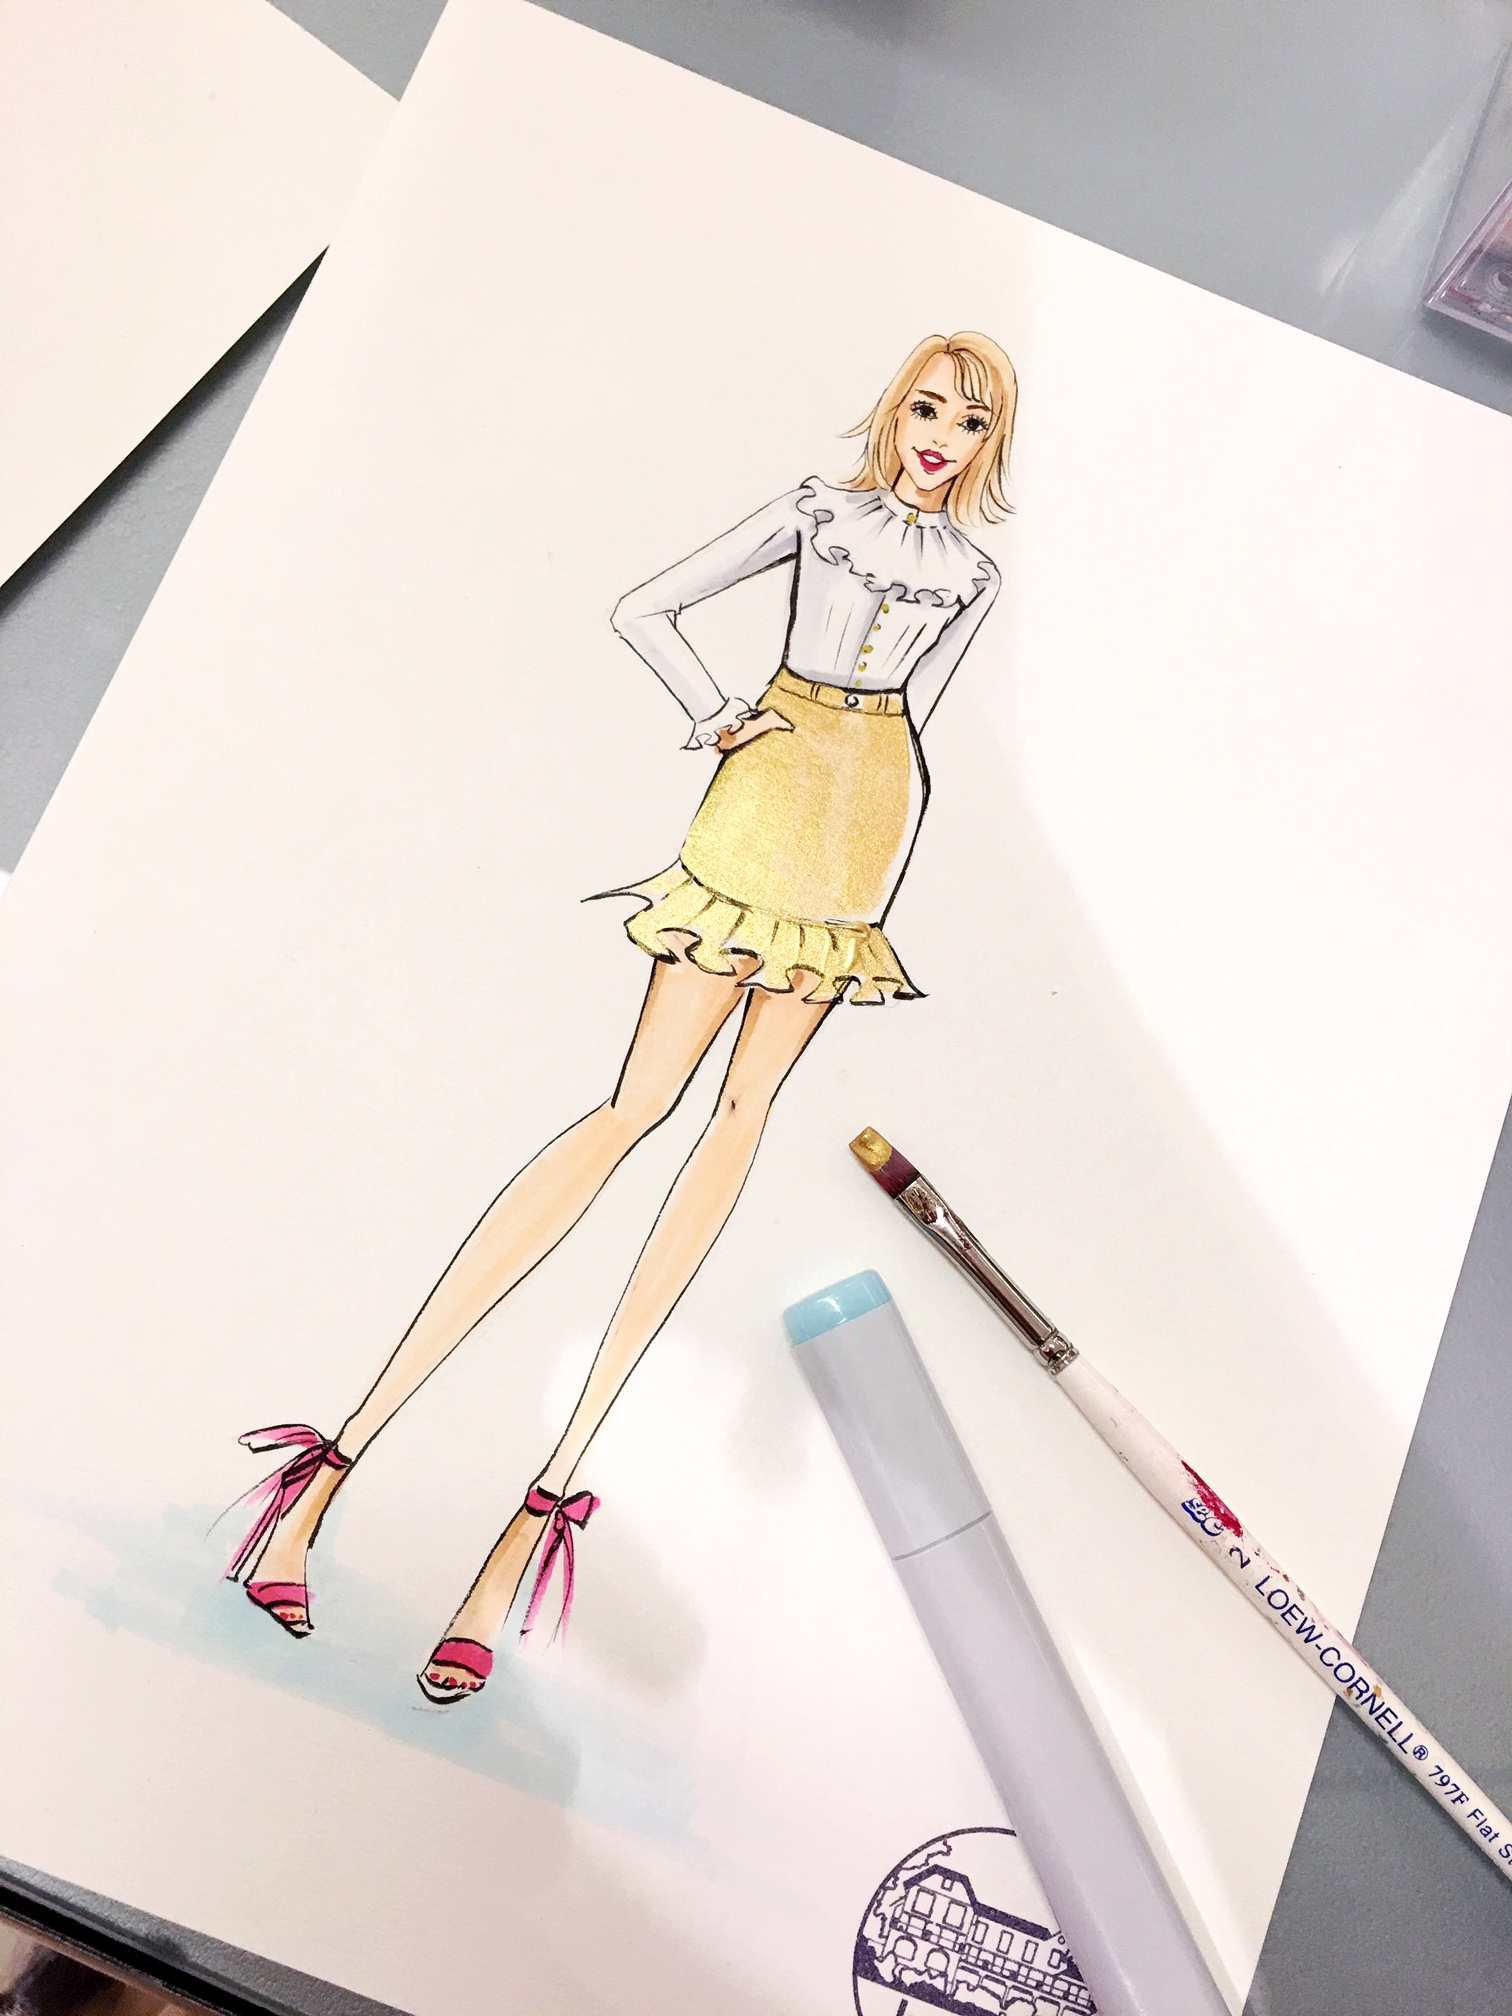 La-Prairie-live-sketch-event-at-Saks fifth avenue-Houston-by-fashion-illustrator-Rongrong-DeVoe--3